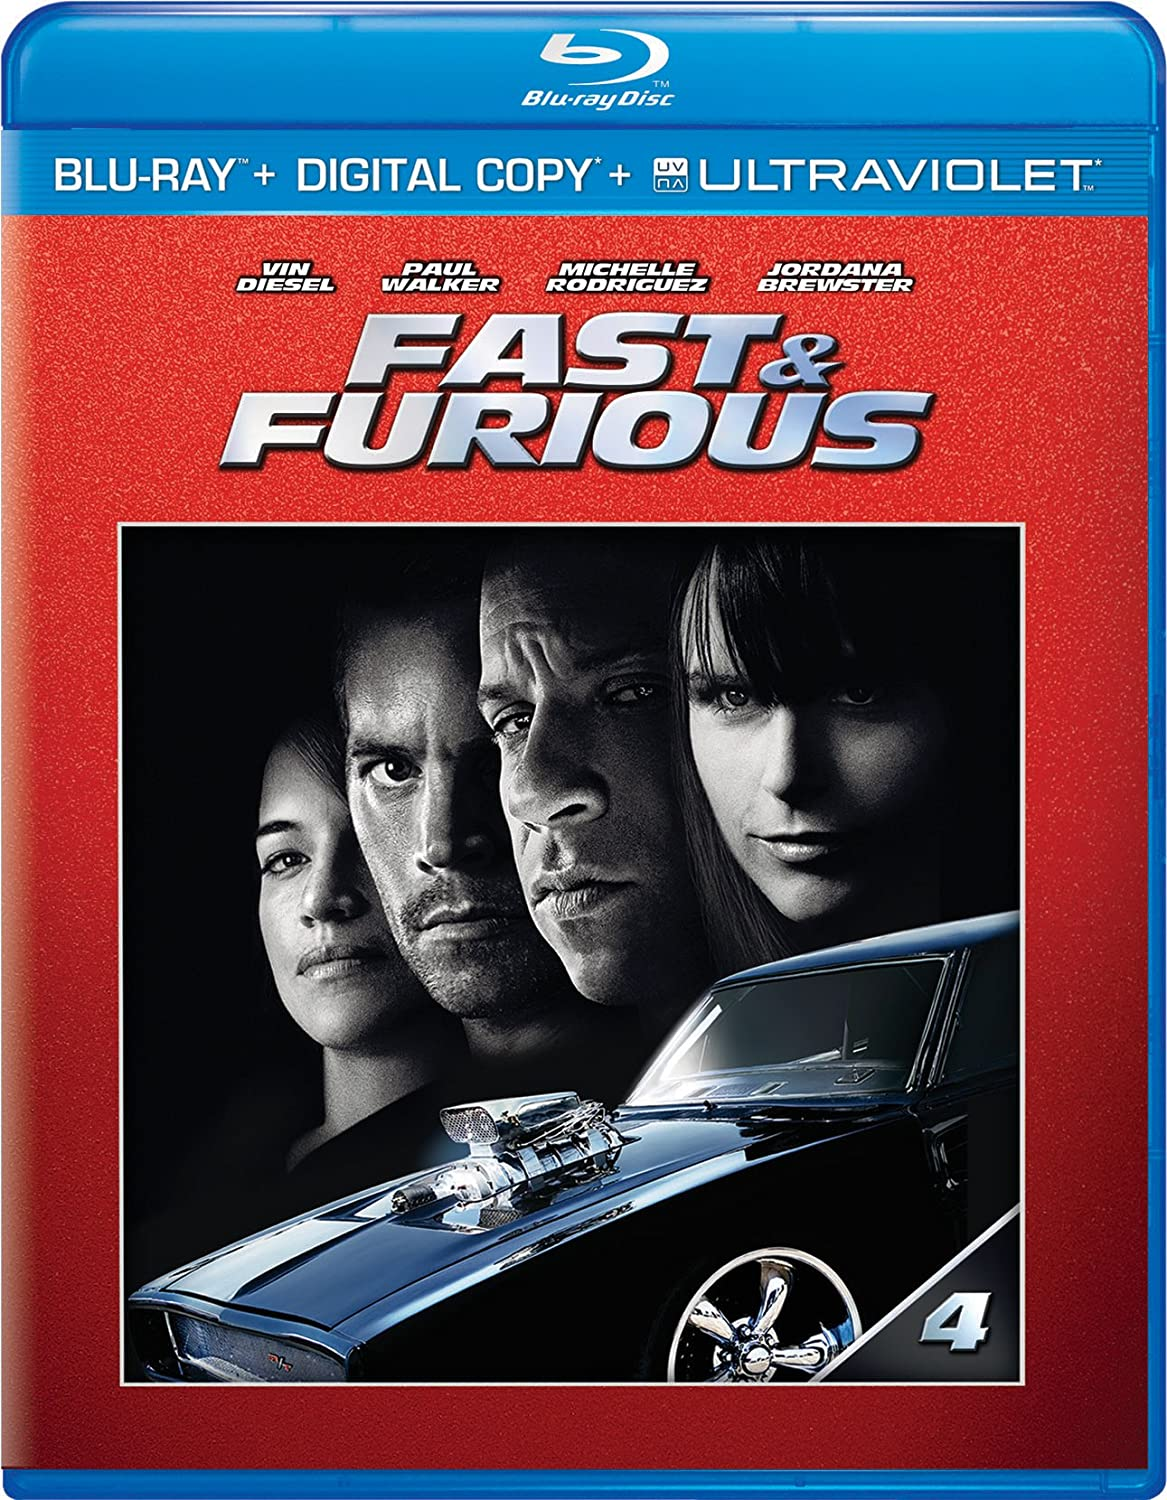 The Fast and the Furious - Balthazar's List